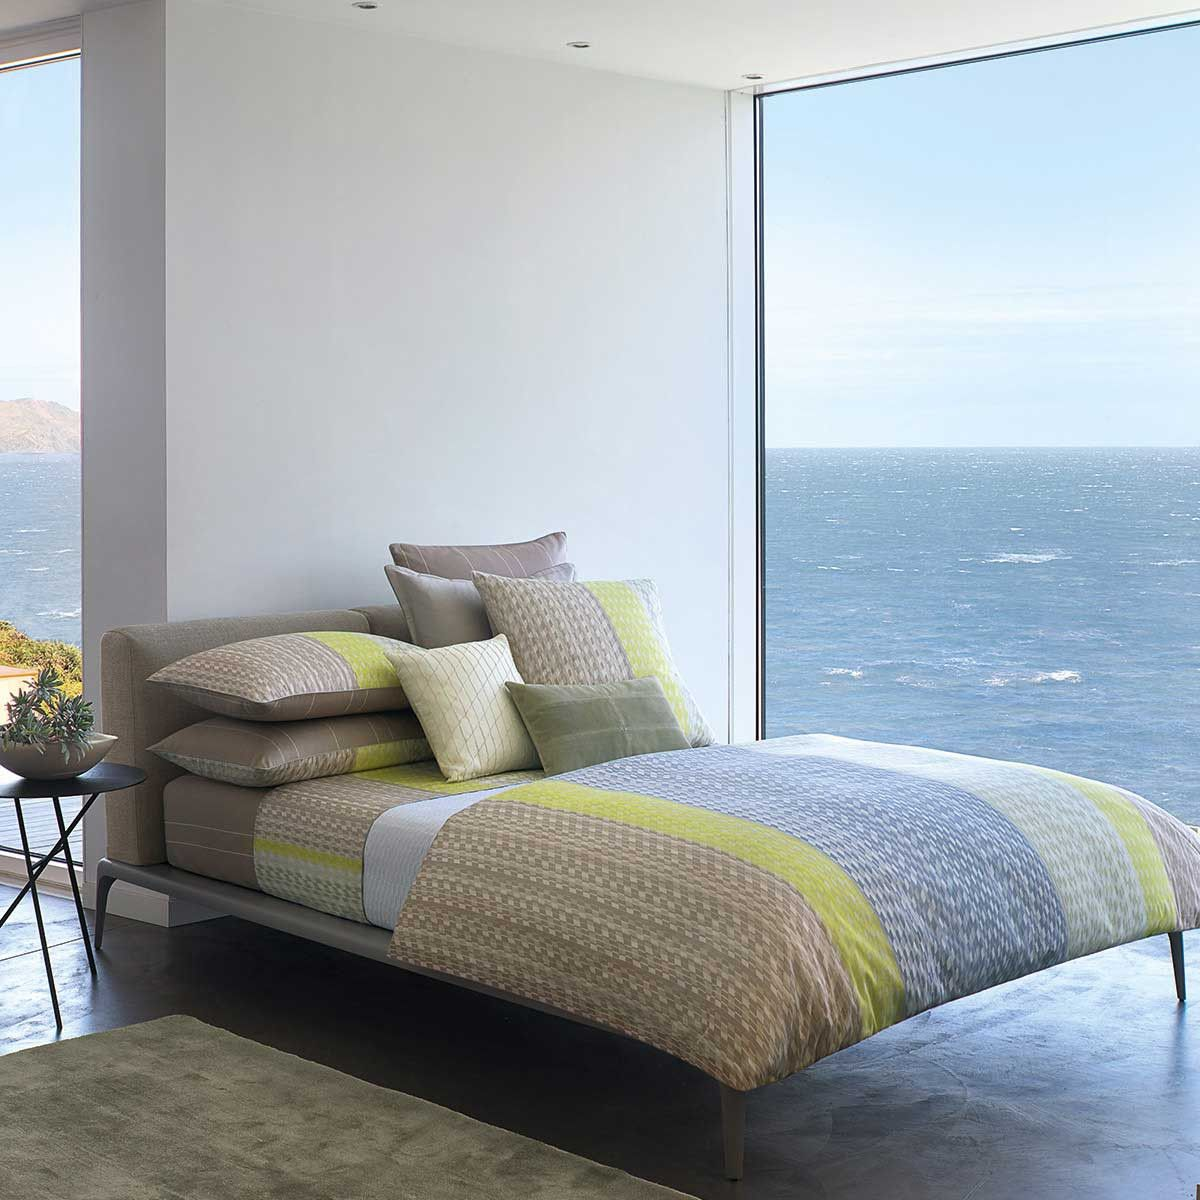 Facet Bedding Brought To Us By Hugo Boss In Smoky Shades Of Grey